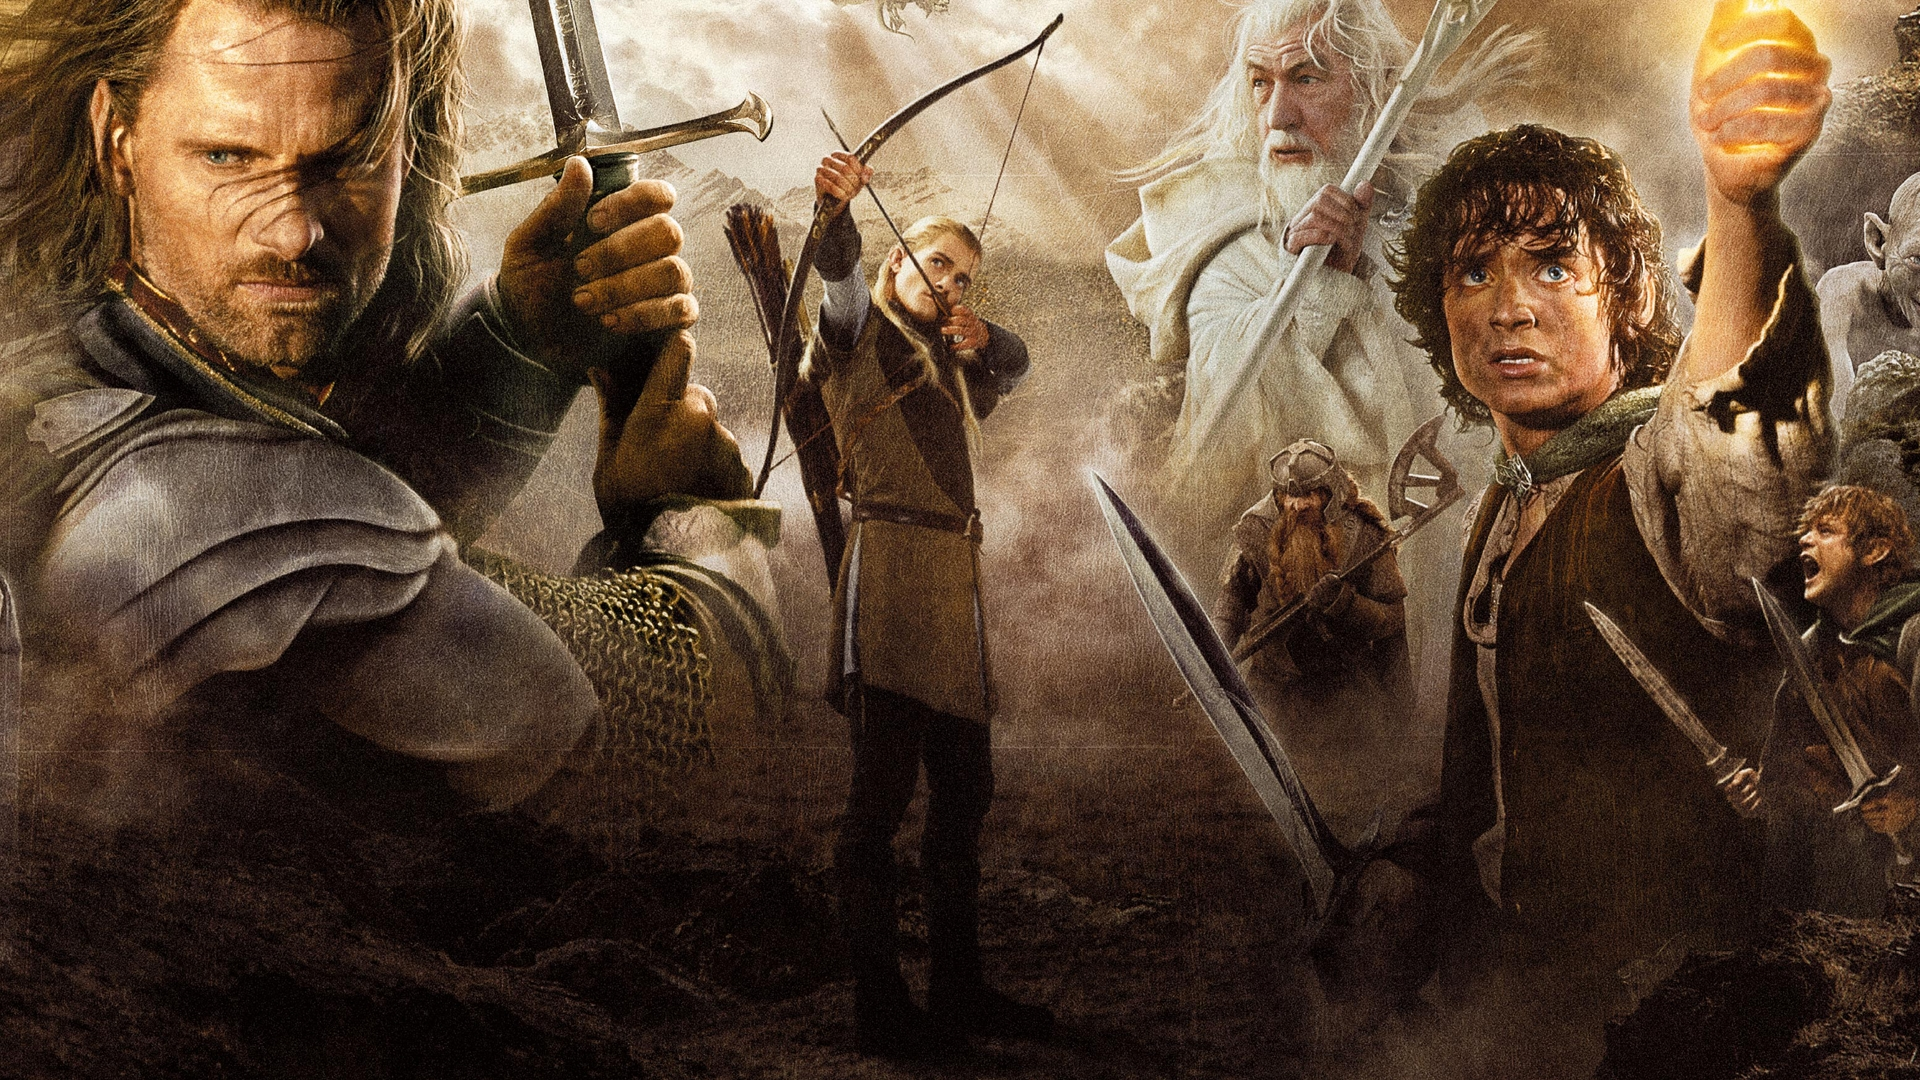 an analysis of lord of the rings picked apart